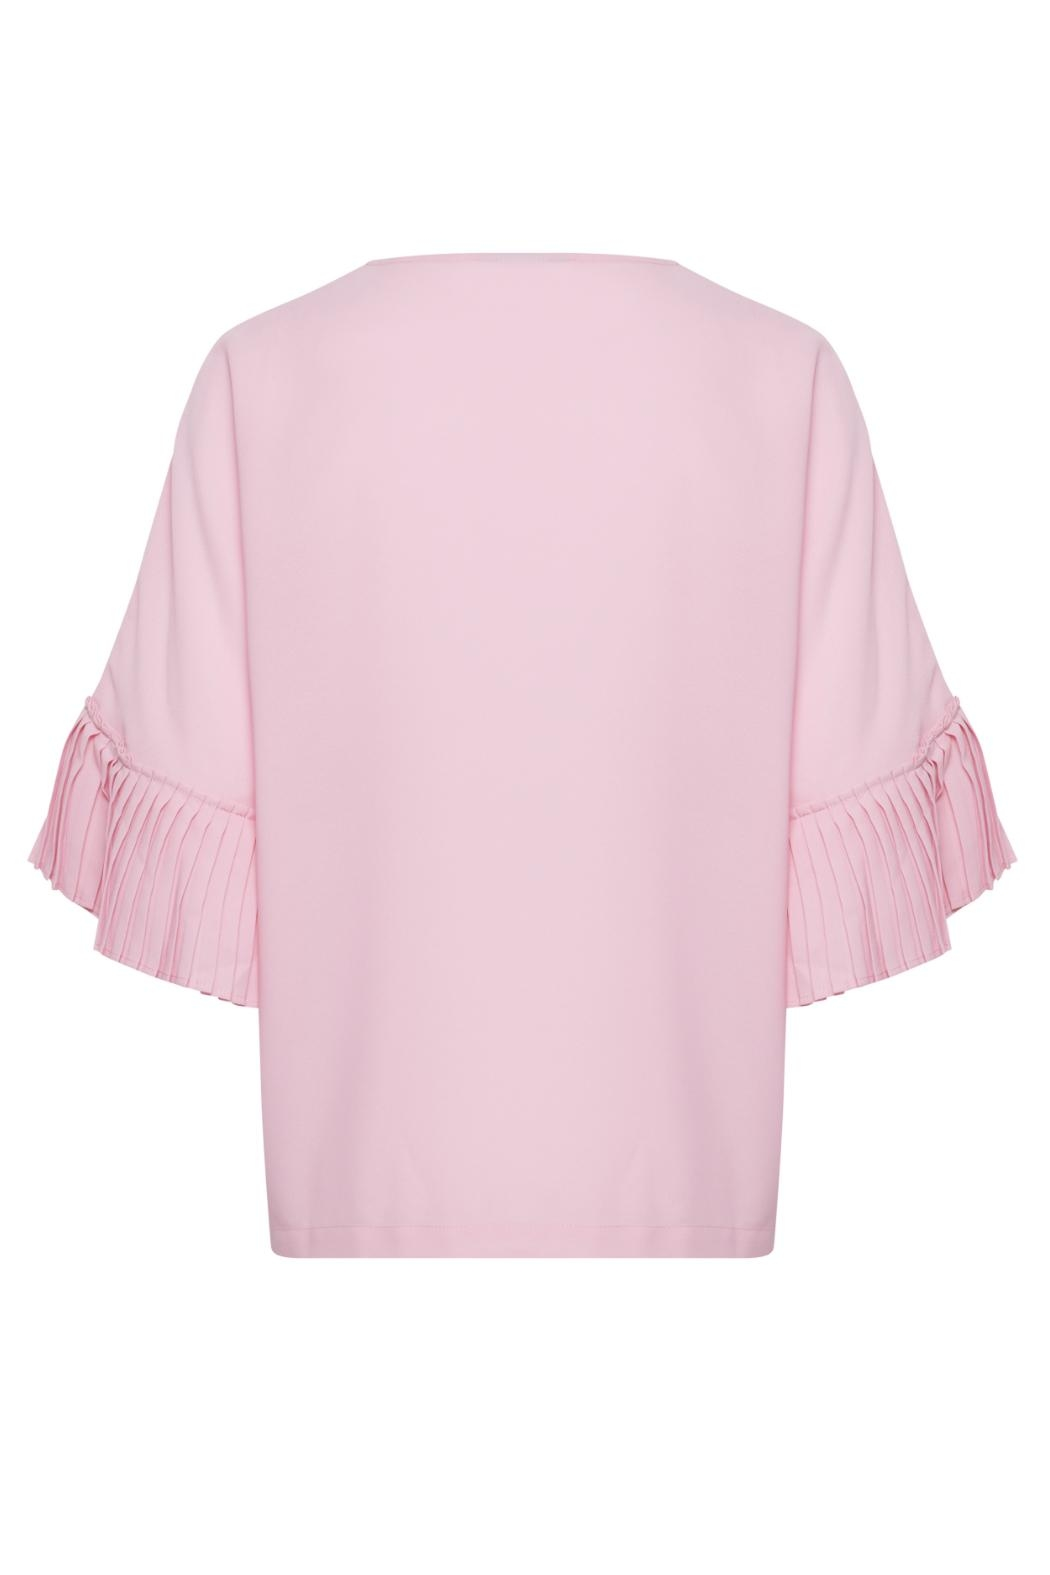 B.young Pretty Pink Blouse - Front Full Image